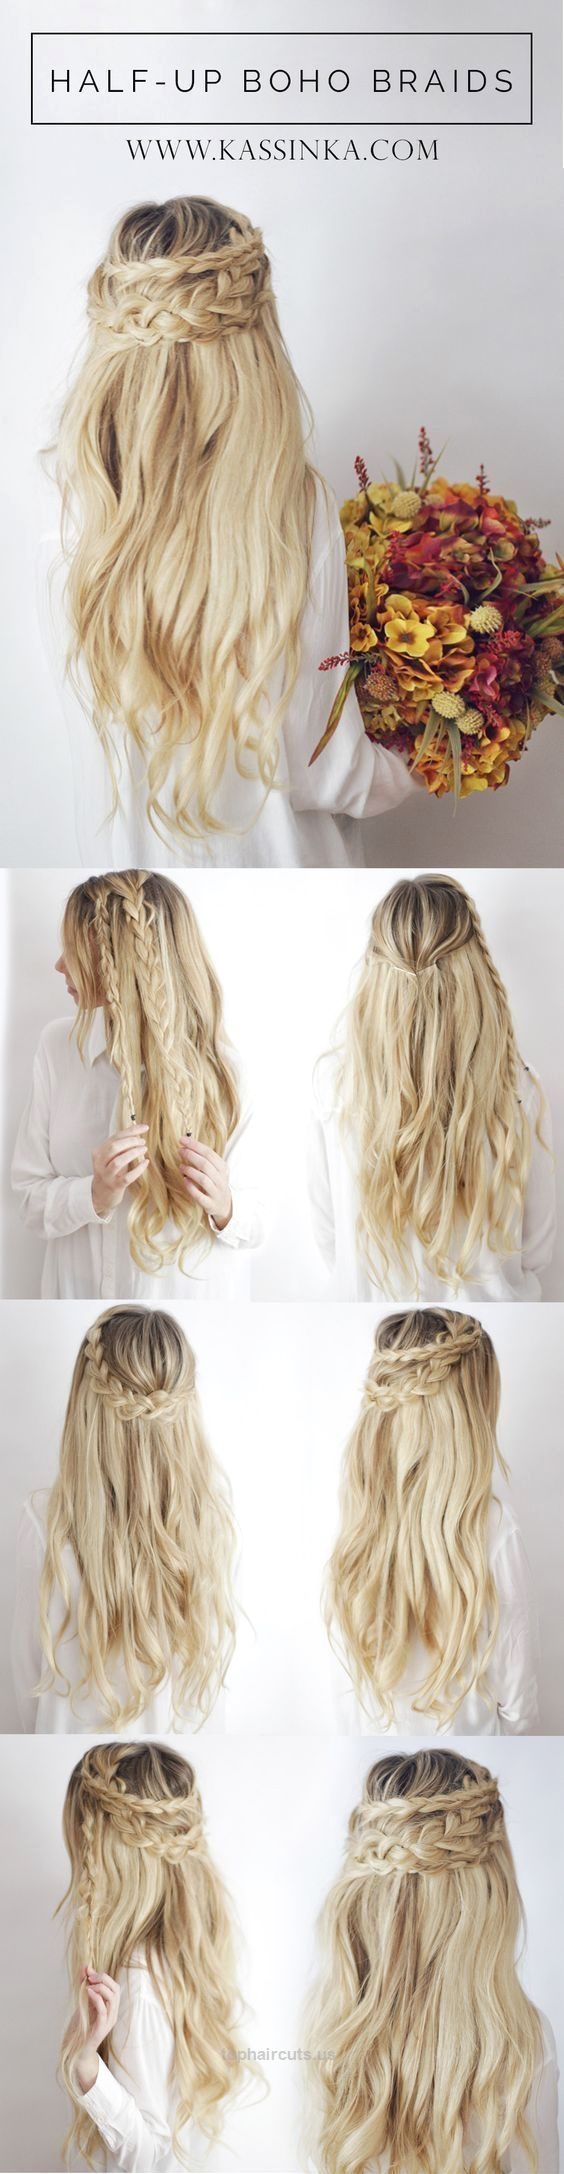 261 best Hairstyles for Medium Hair images on Pinterest | Haircut ...